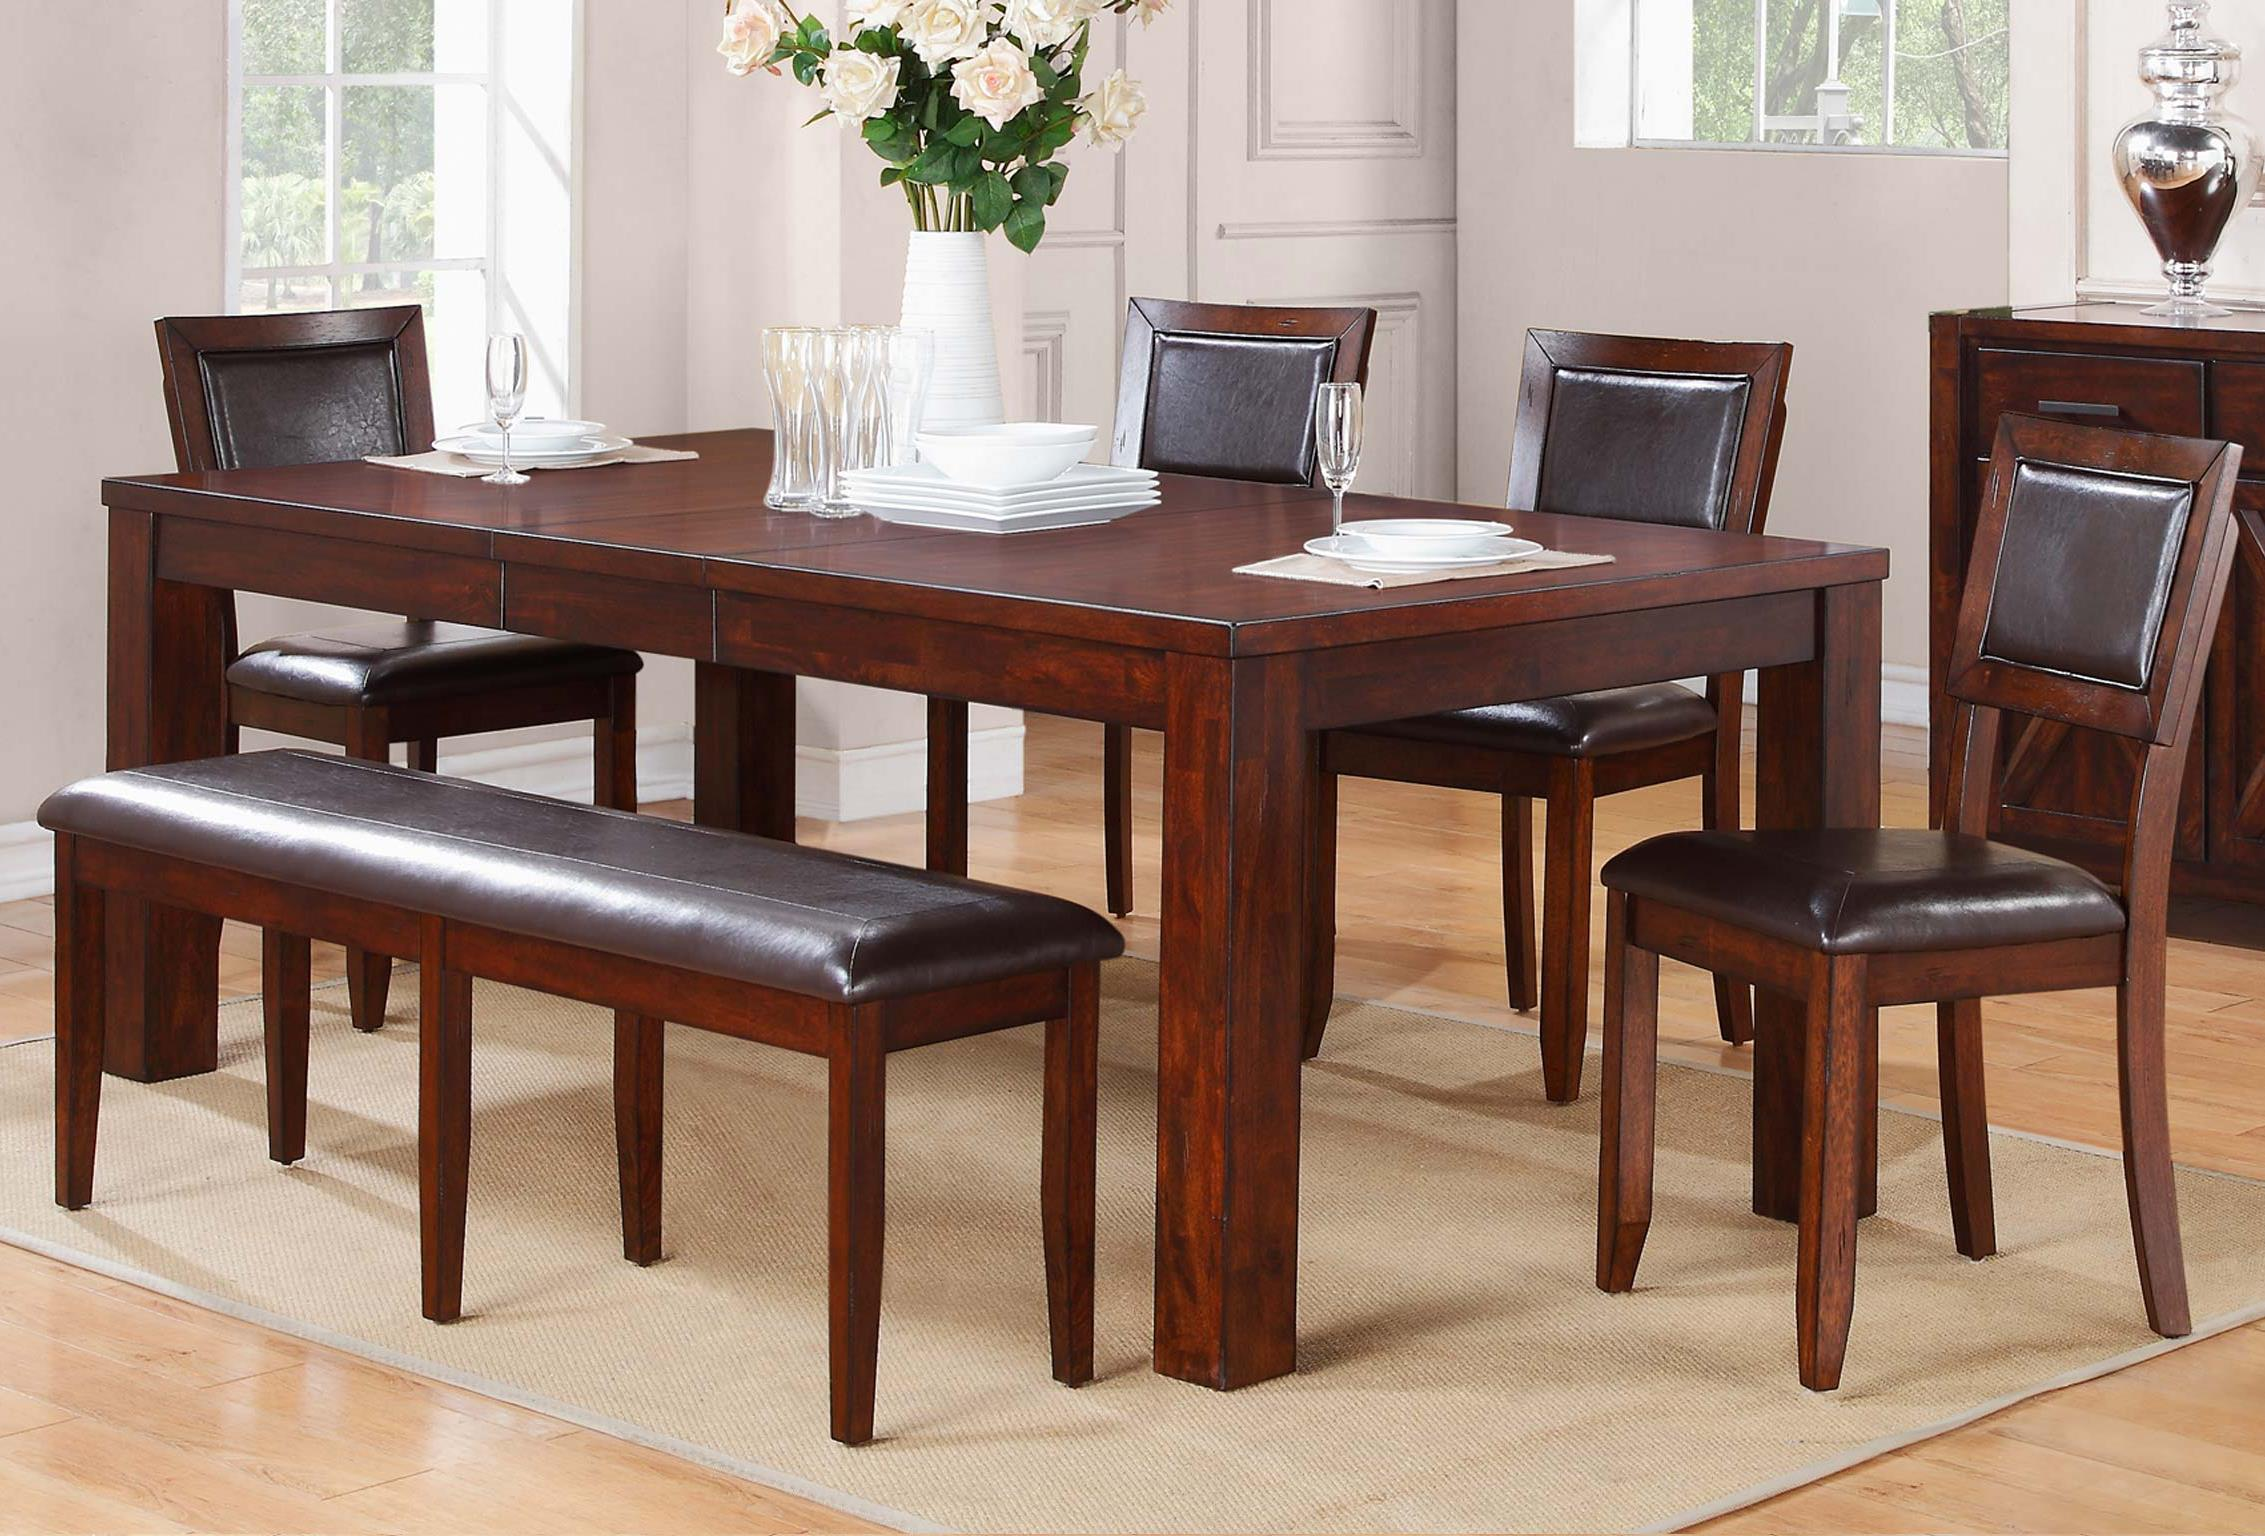 Winners Only Fallbrook 6 Piece Dining Set - Item Number: DFM14284+4x50S+5524